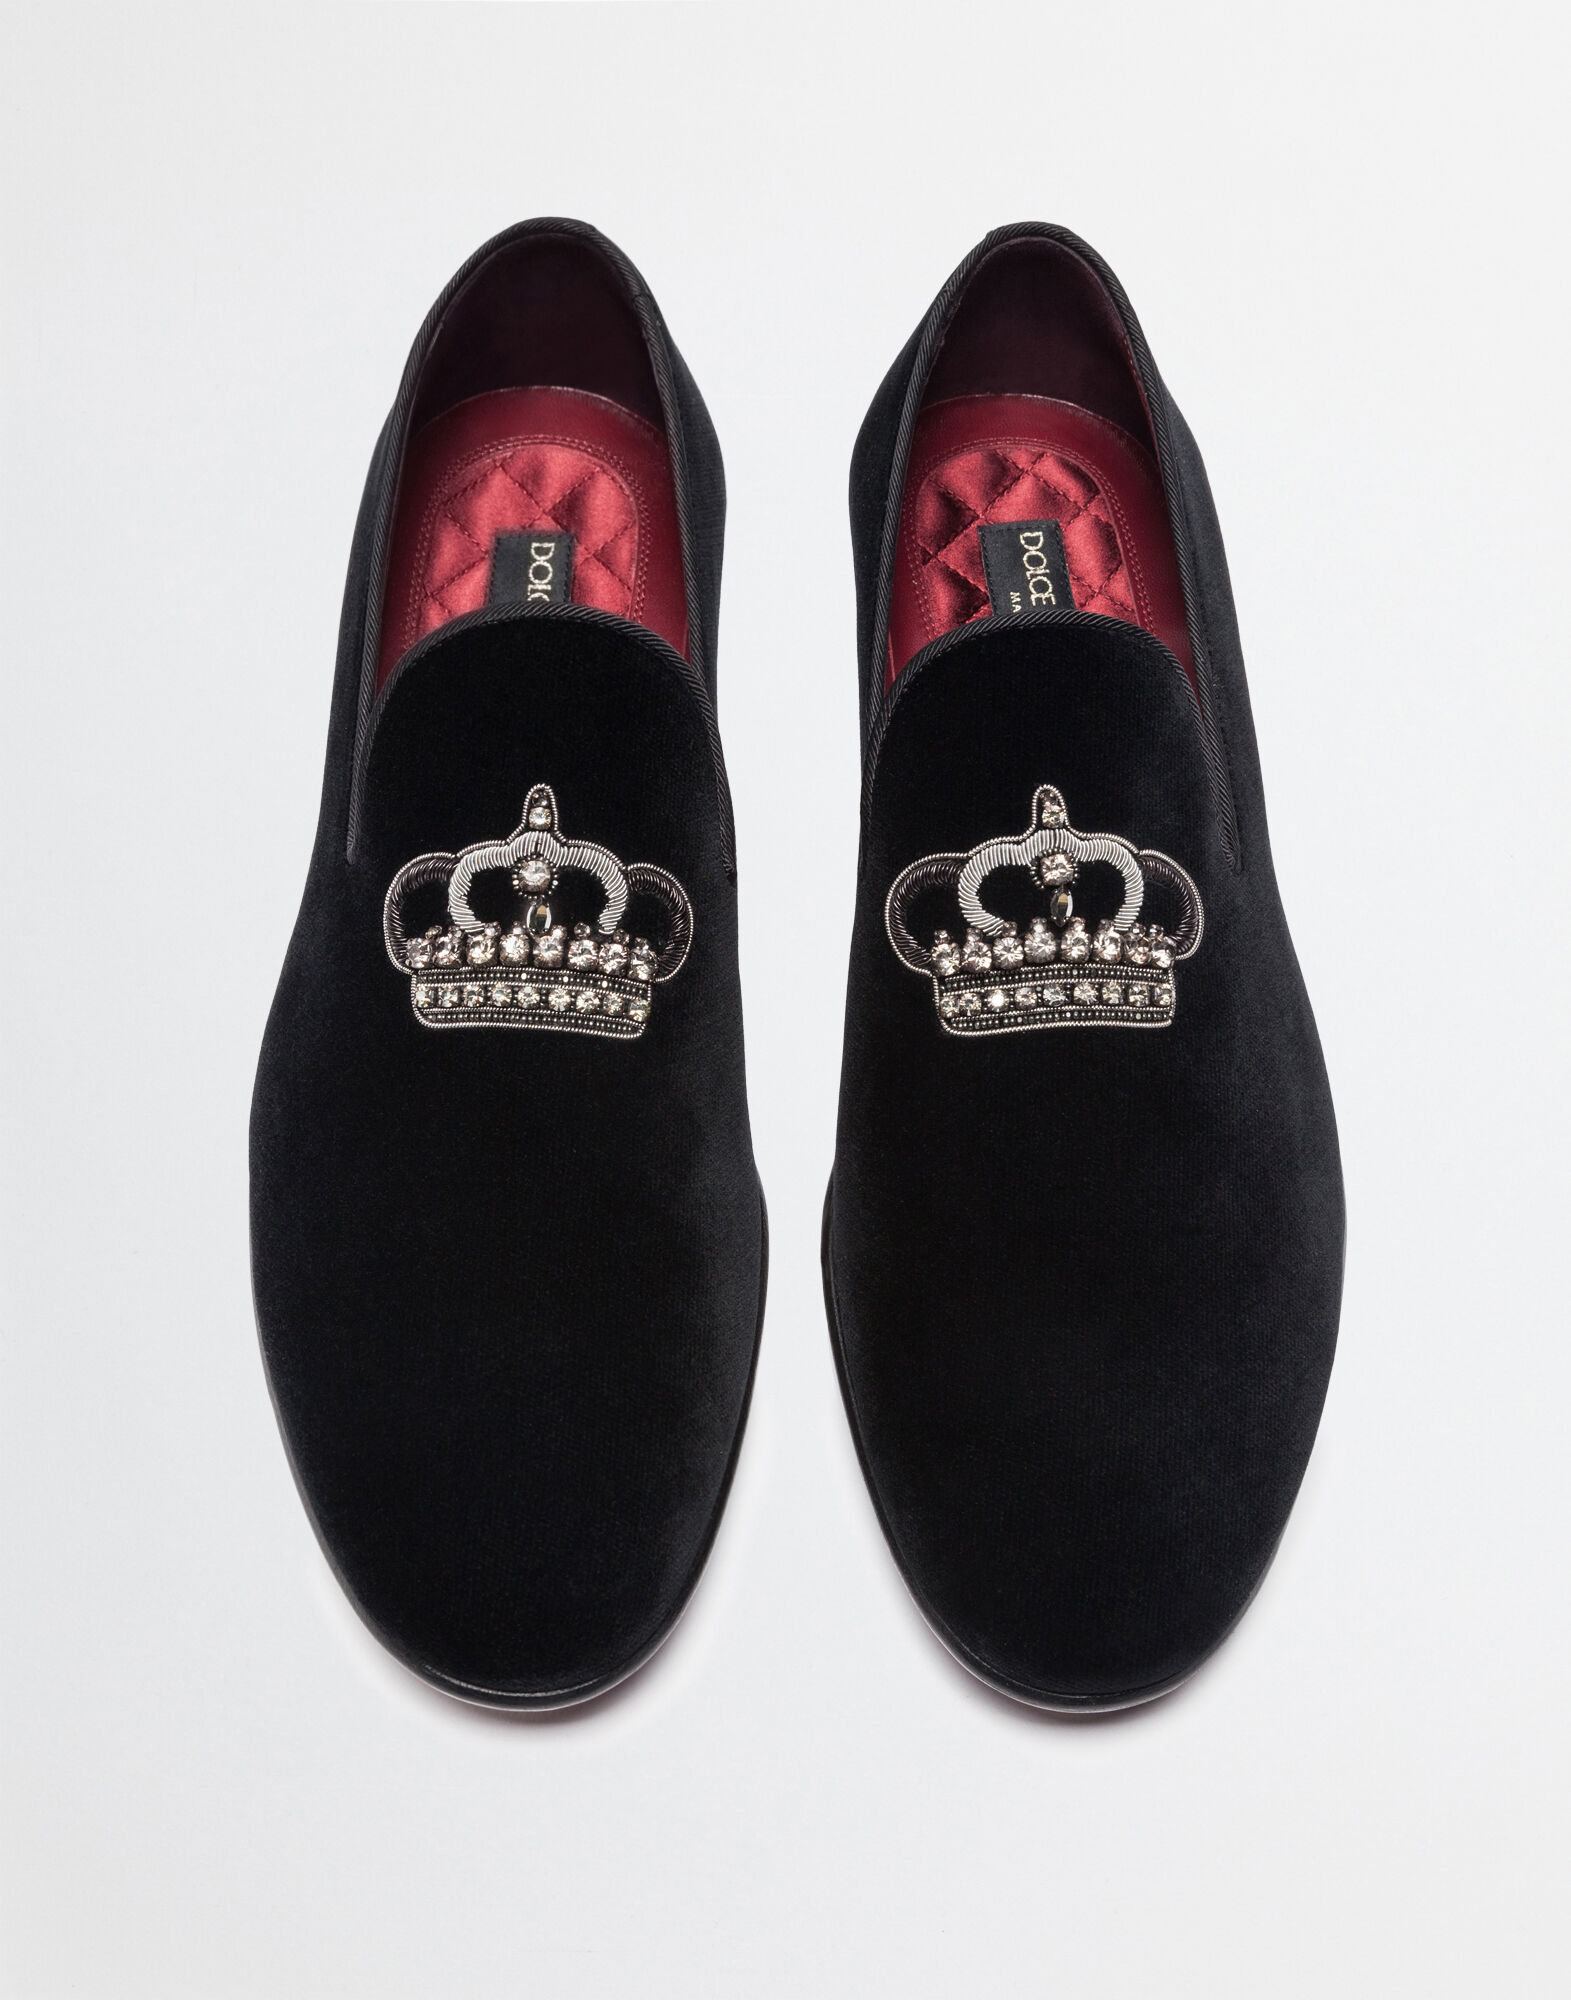 SLIPPERS IN VELVET WITH EMBROIDERY